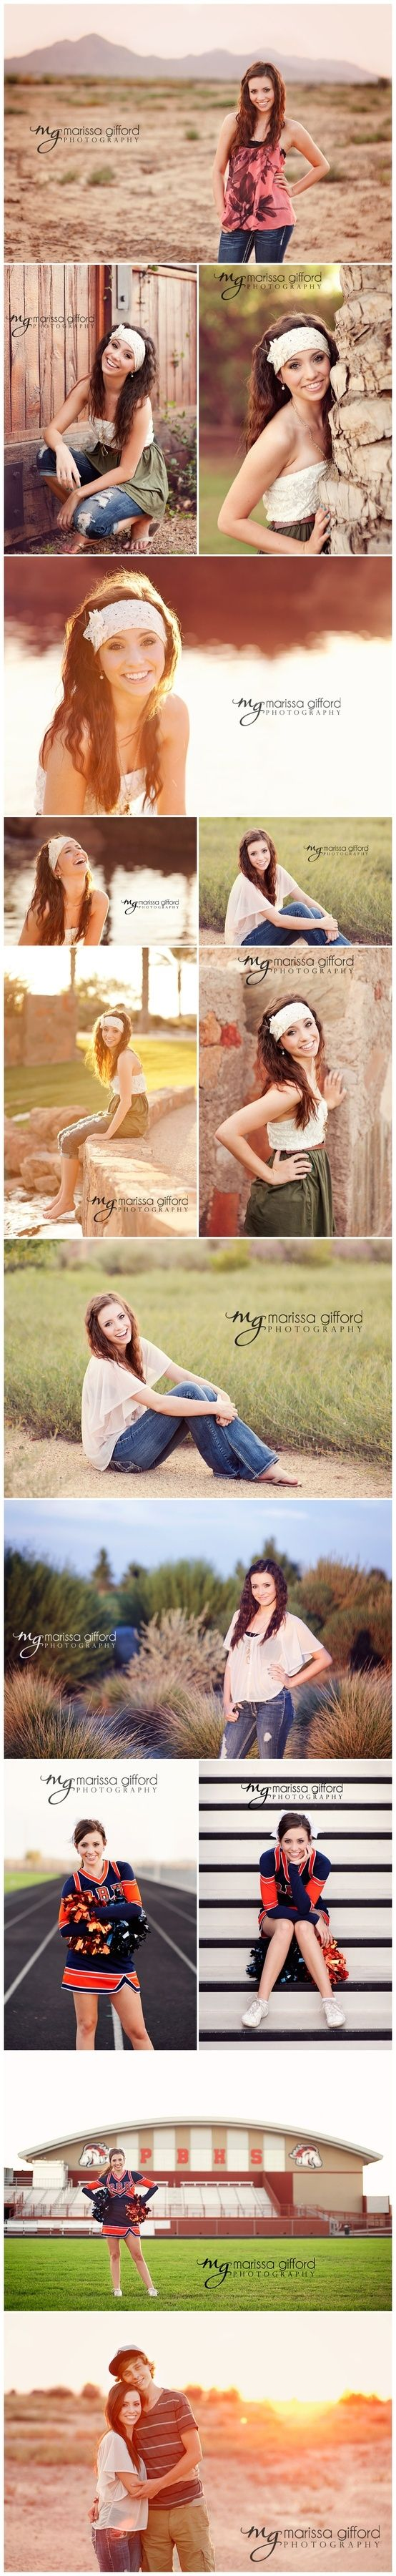 Senior Girl Photography - Marissa Gifford Photography by S.M.N.